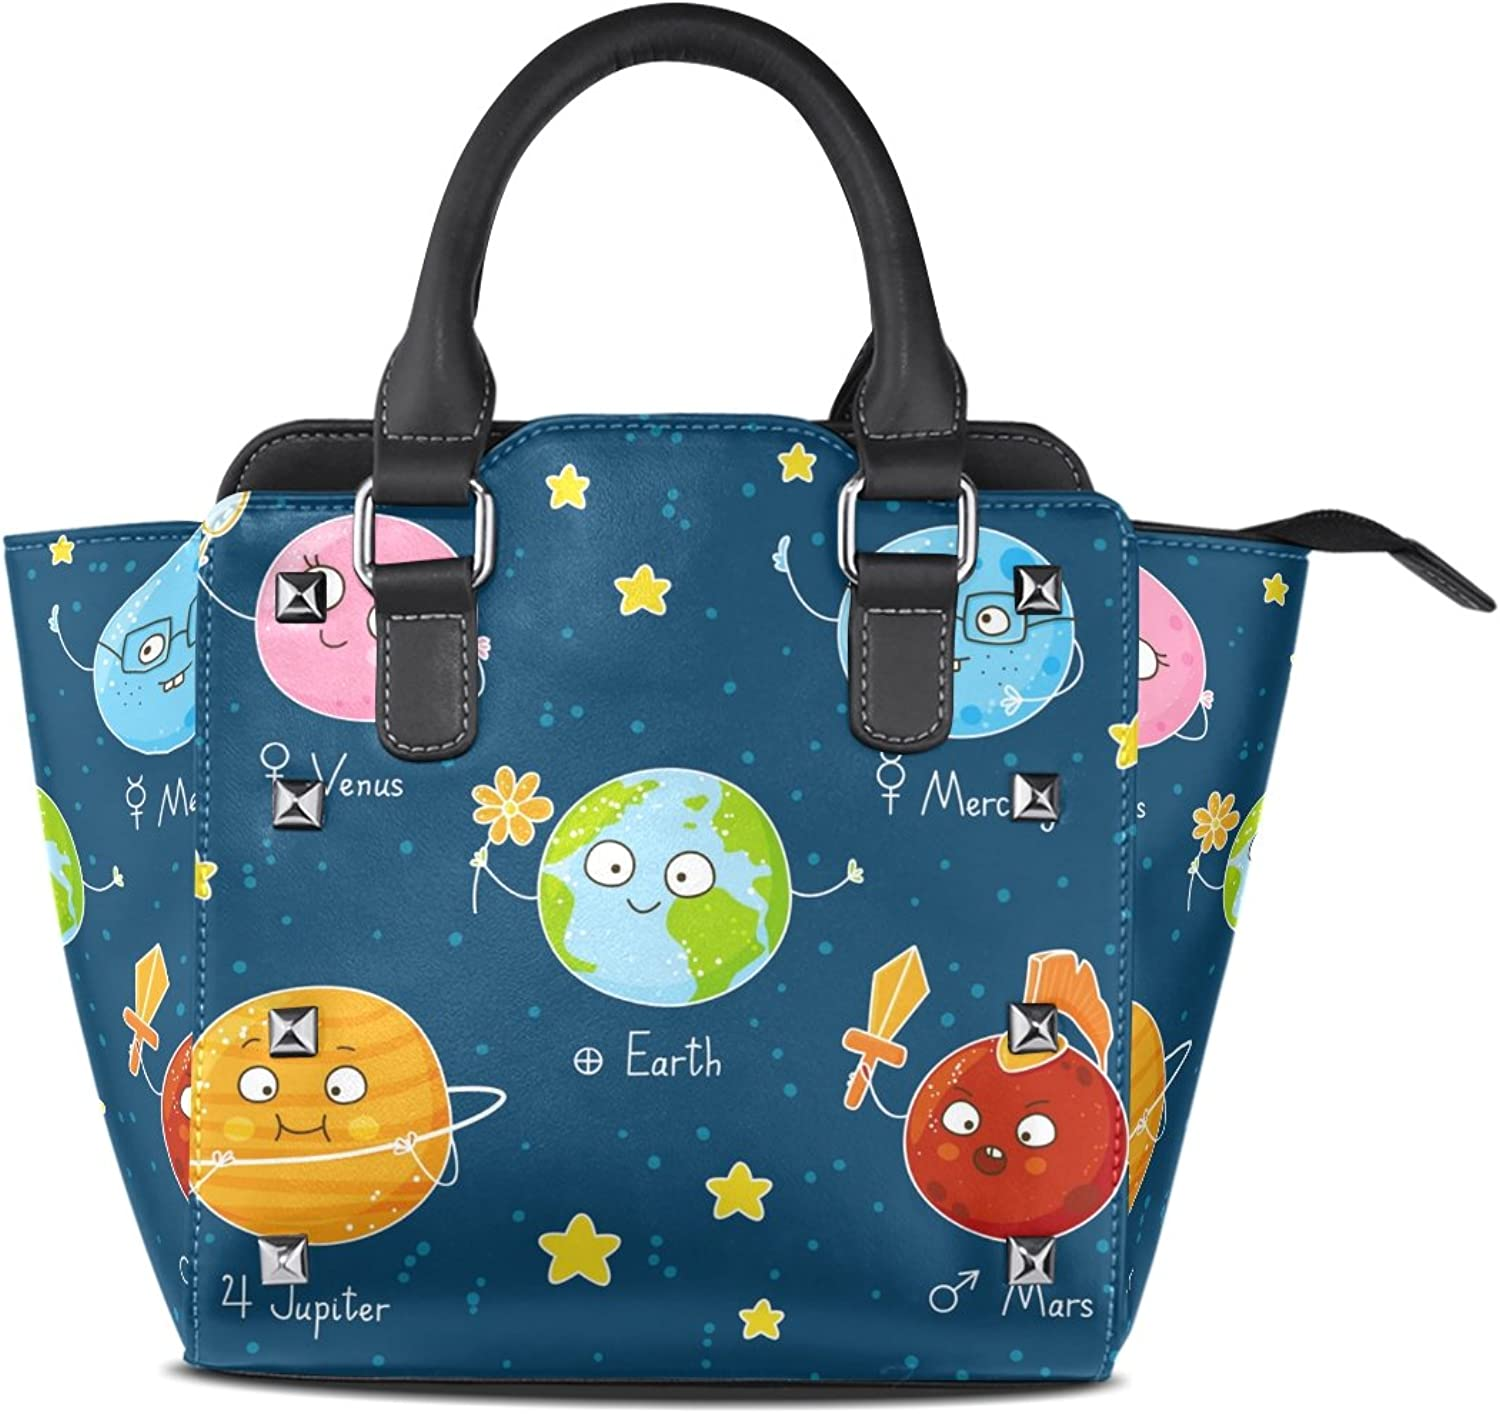 My Little Nest Women's Top Handle Satchel Handbag Cute Space Solar System Planets Ladies PU Leather Shoulder Bag Crossbody Bag